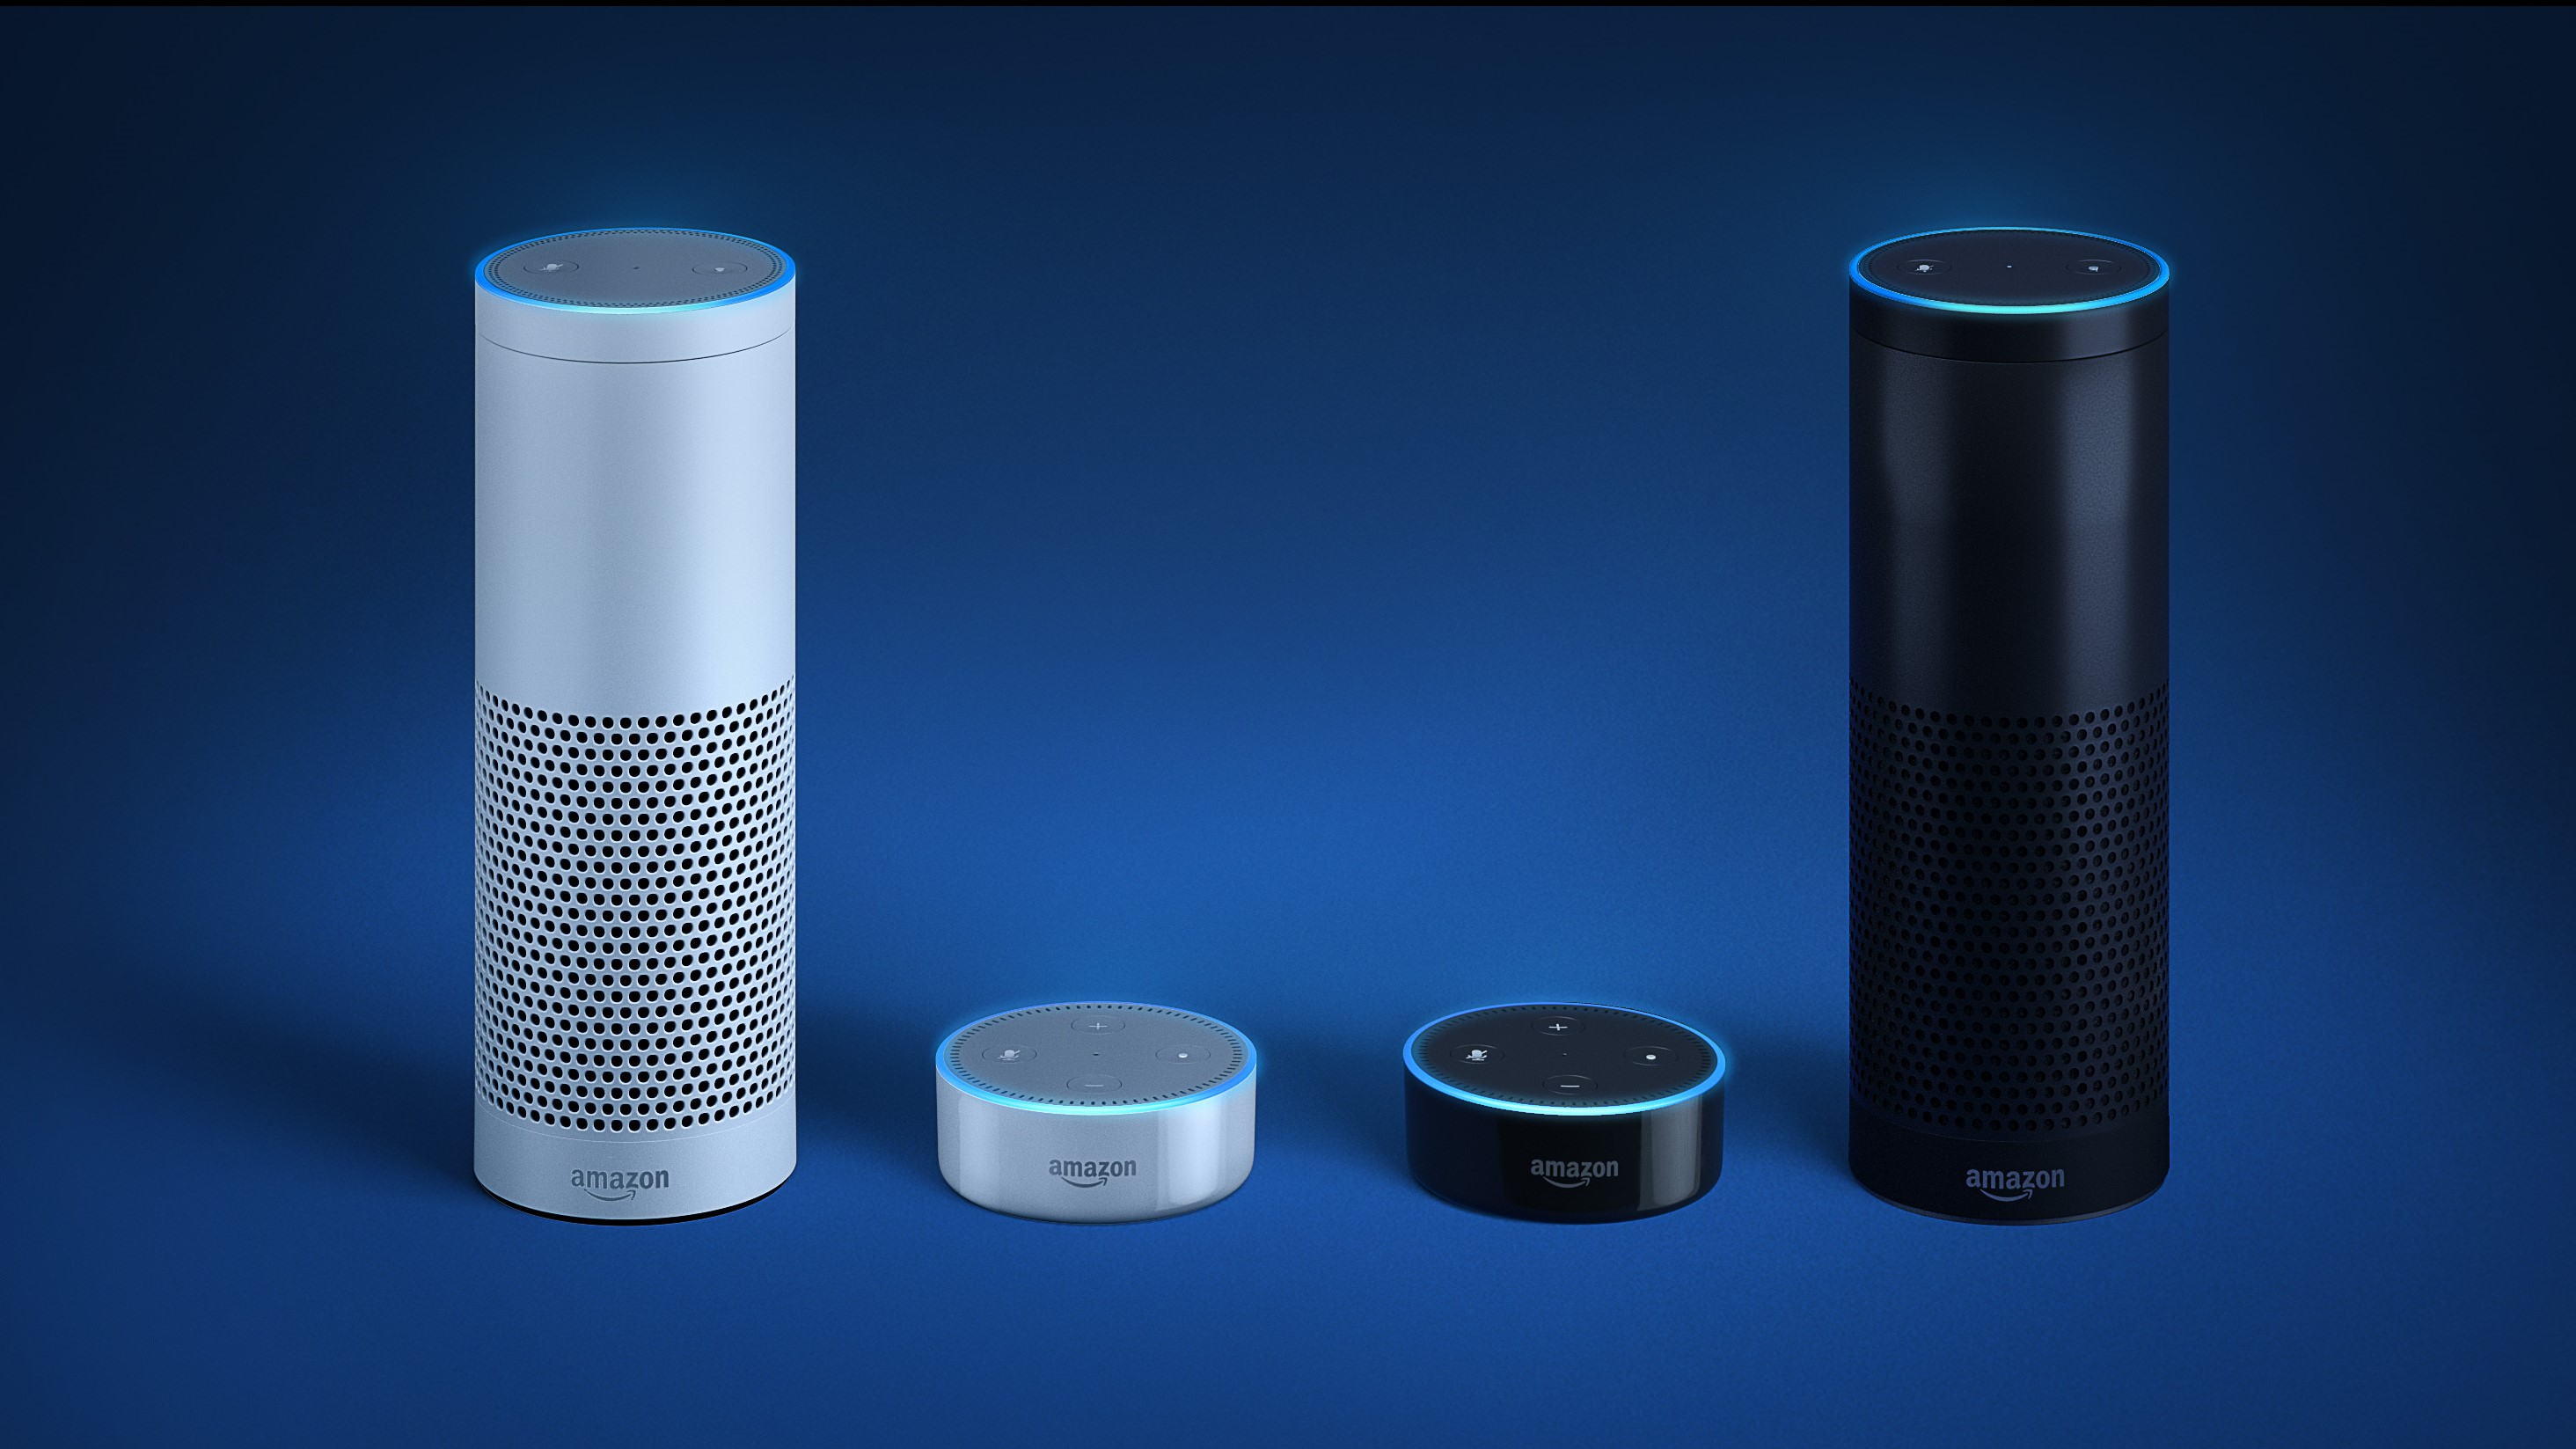 webmd hopes amazon 39 s alexa will end reliance on dr google. Black Bedroom Furniture Sets. Home Design Ideas